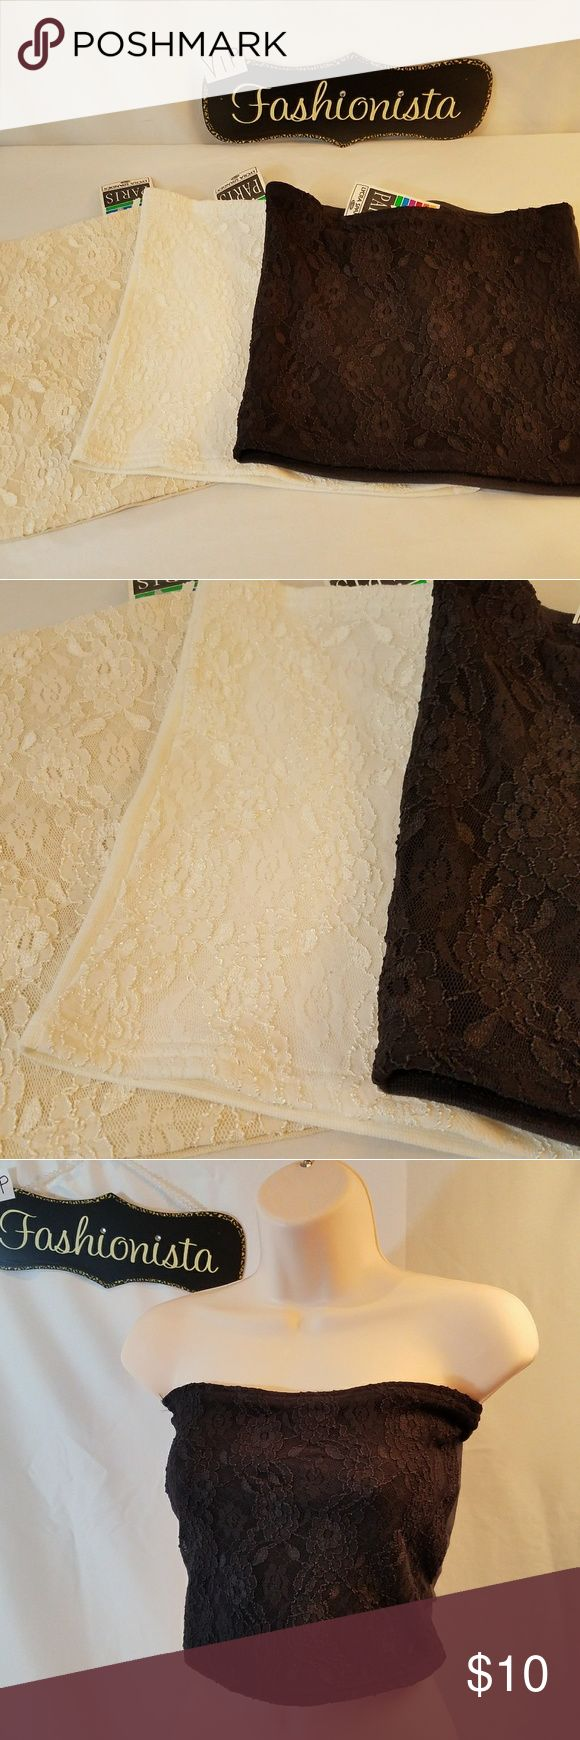 """BUNDLE PACK OF BANDEAU TOPS White, Cream and Black Bandeau Tops with Lace overlay on the front. One size fits most. Measures 10.5"""" from top to bottom. Paris Tops Tank Tops"""